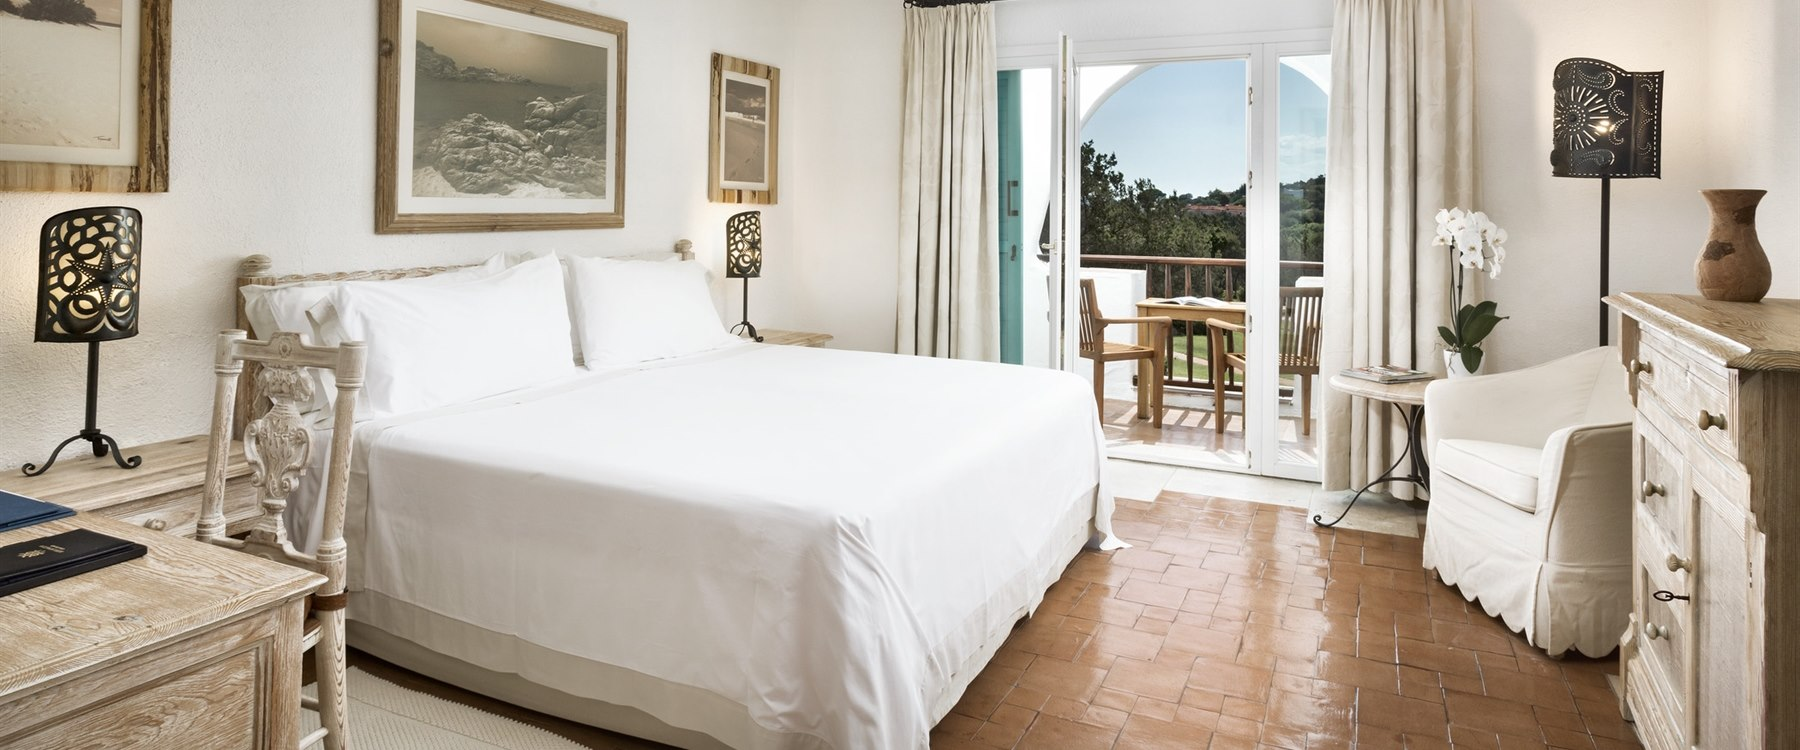 superior double bedroom at Hotel Romazzino, Sardinia